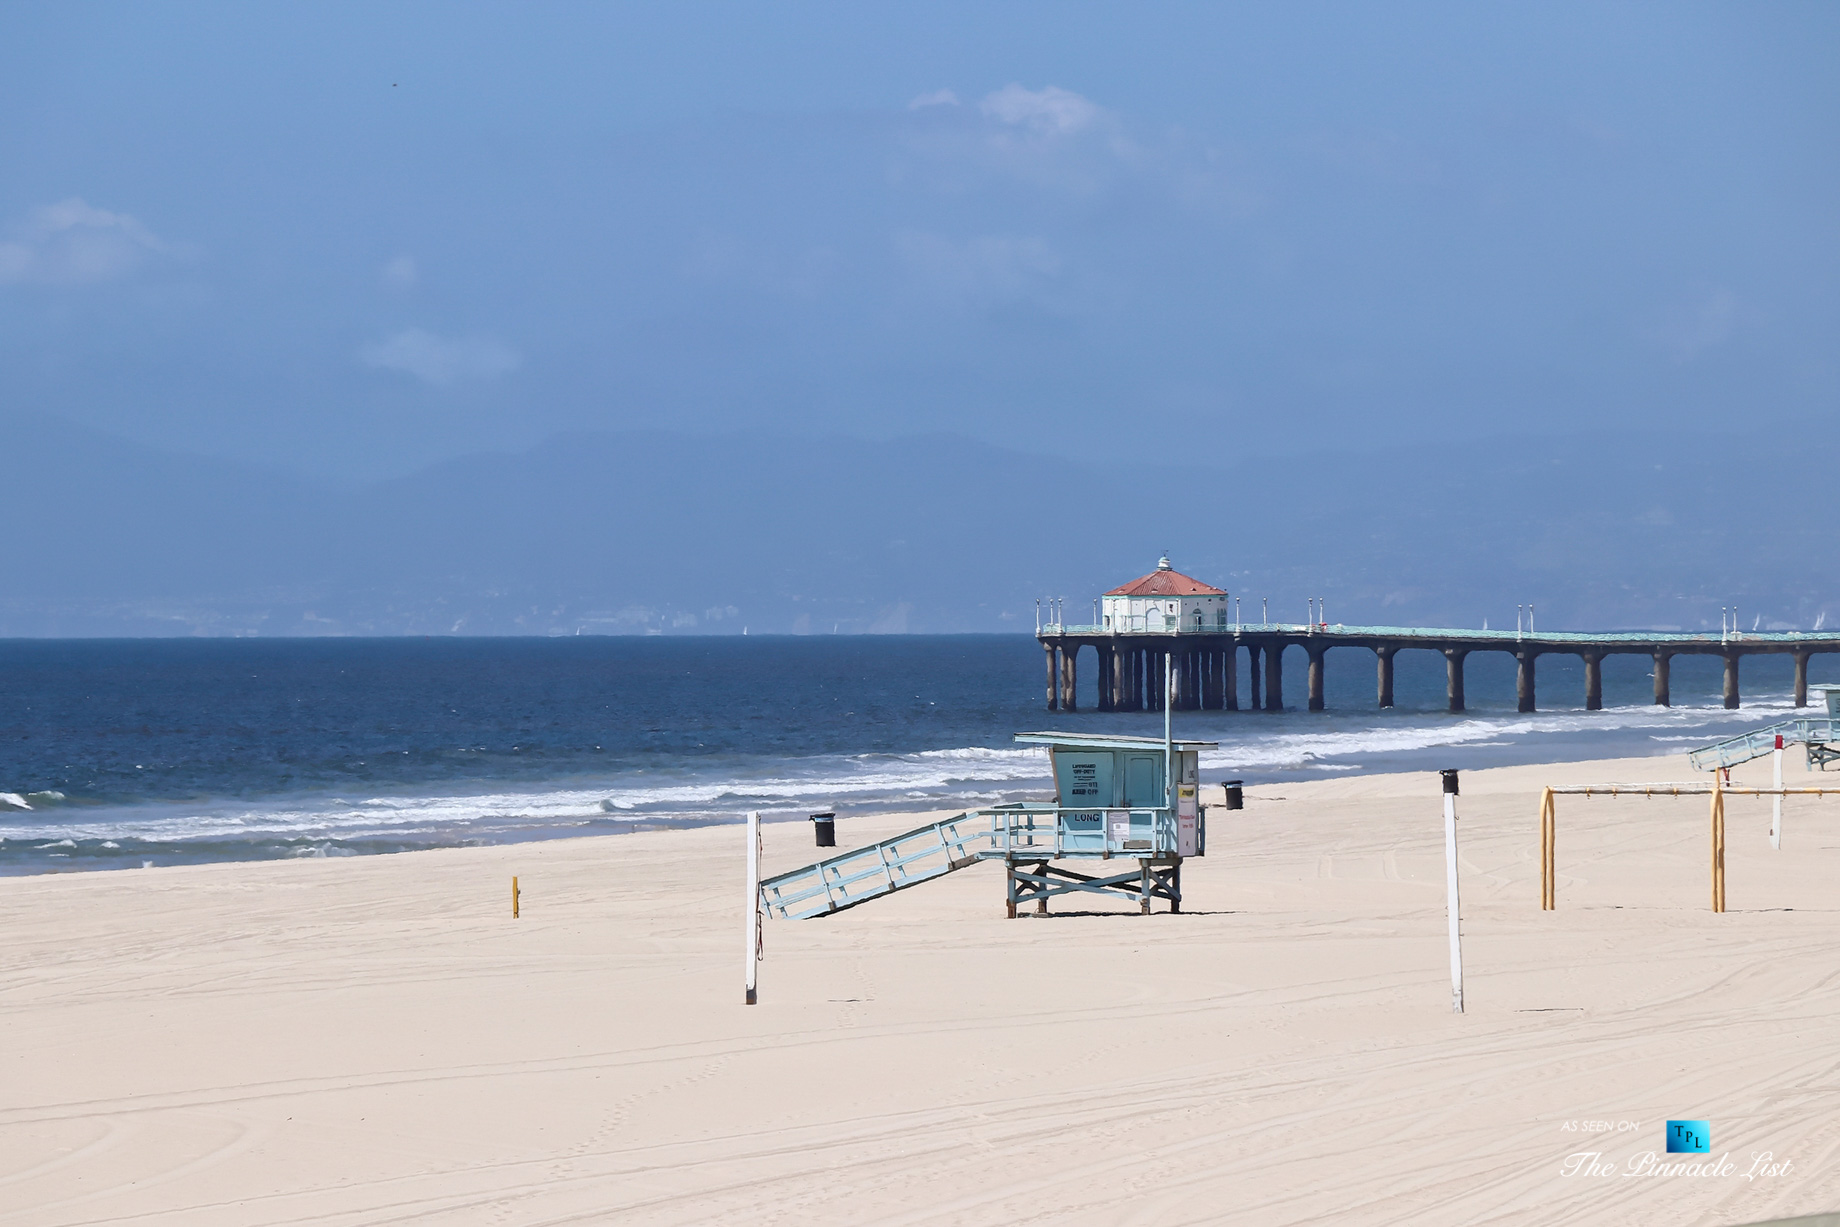 2806 The Strand, Hermosa Beach, CA, USA - Beachfront View - Luxury Real Estate - Oceanfront Home